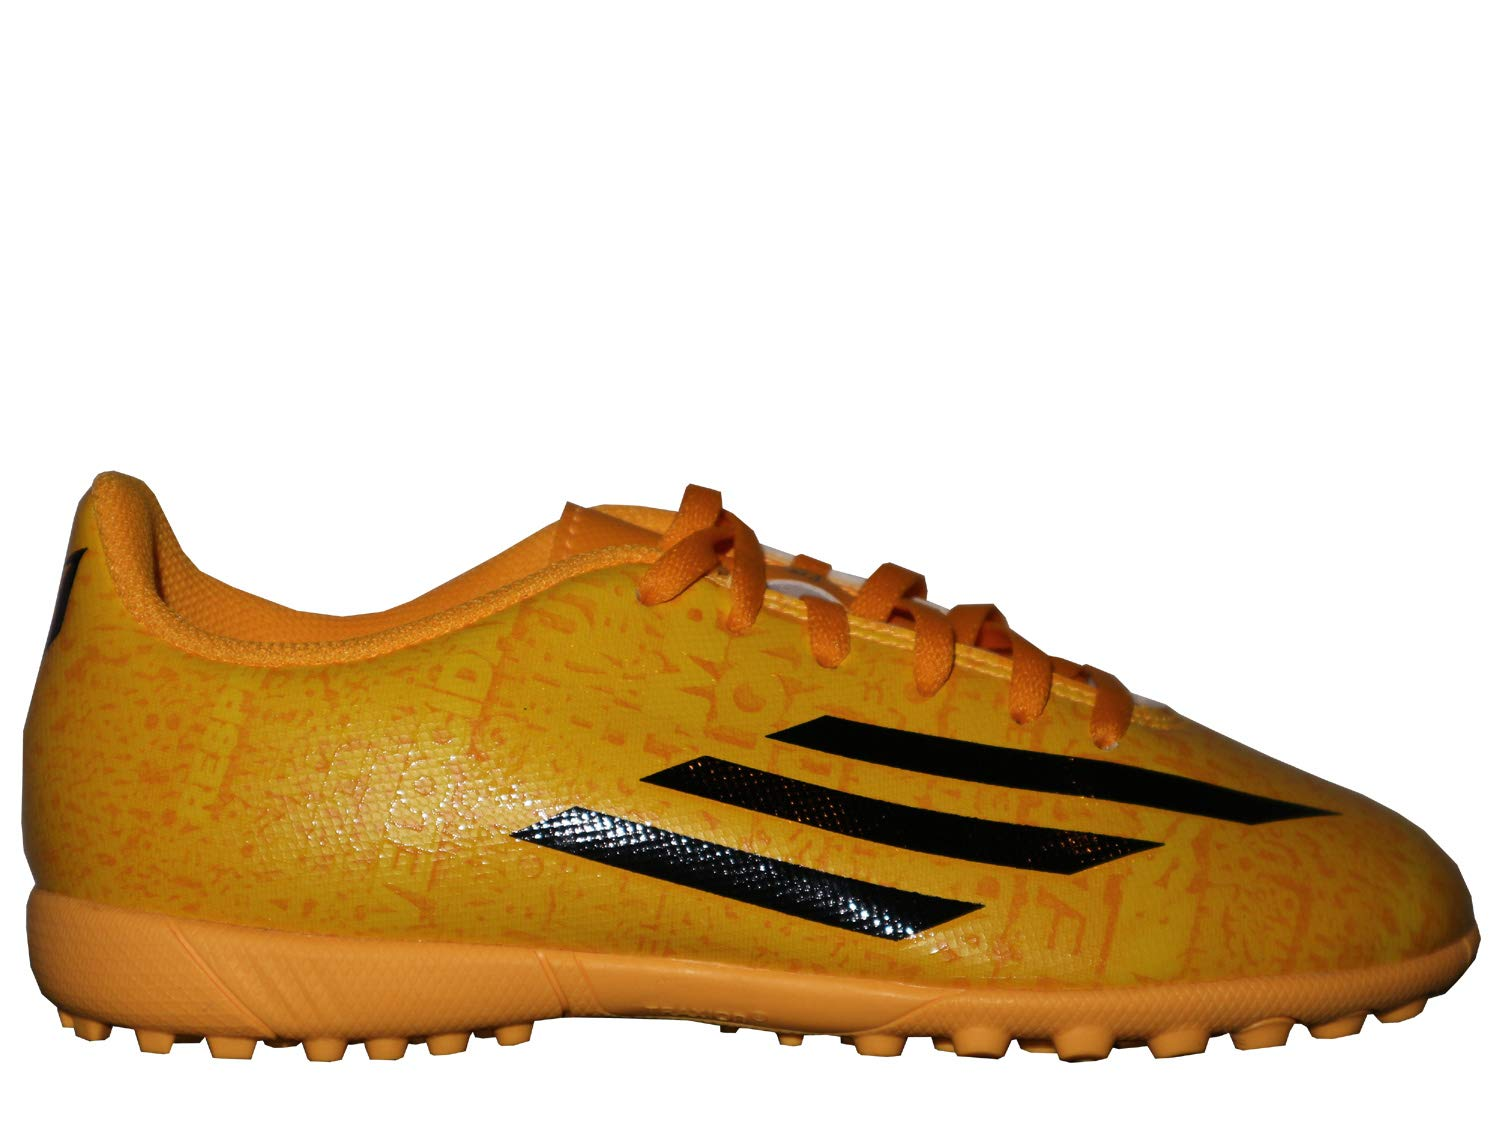 M25053 Color: Yellow Size: 12.0 F5 Messi TF JR adidas